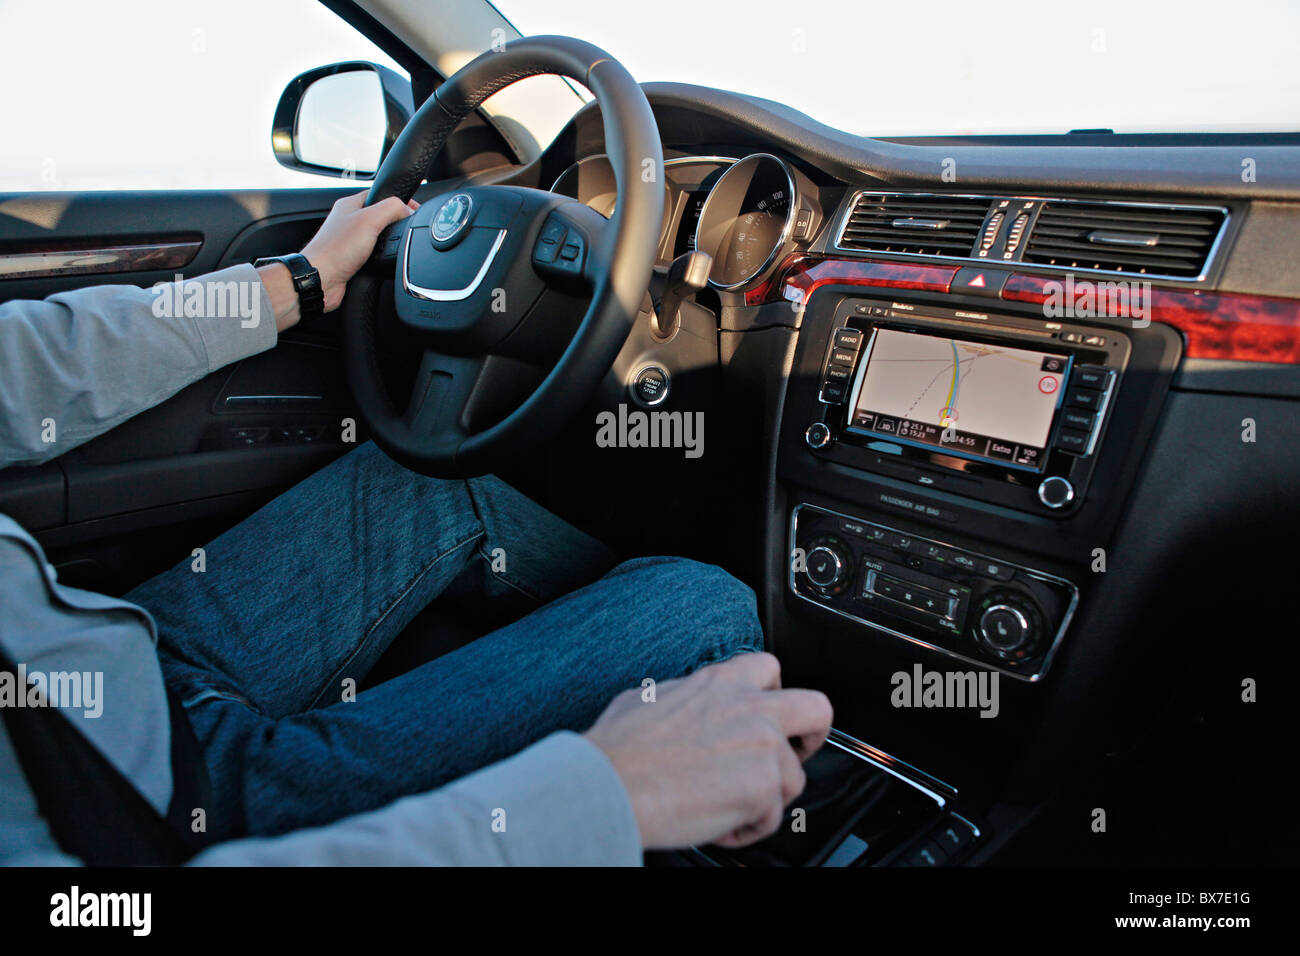 one hand driving, luxury car, built-in GPS navigation system